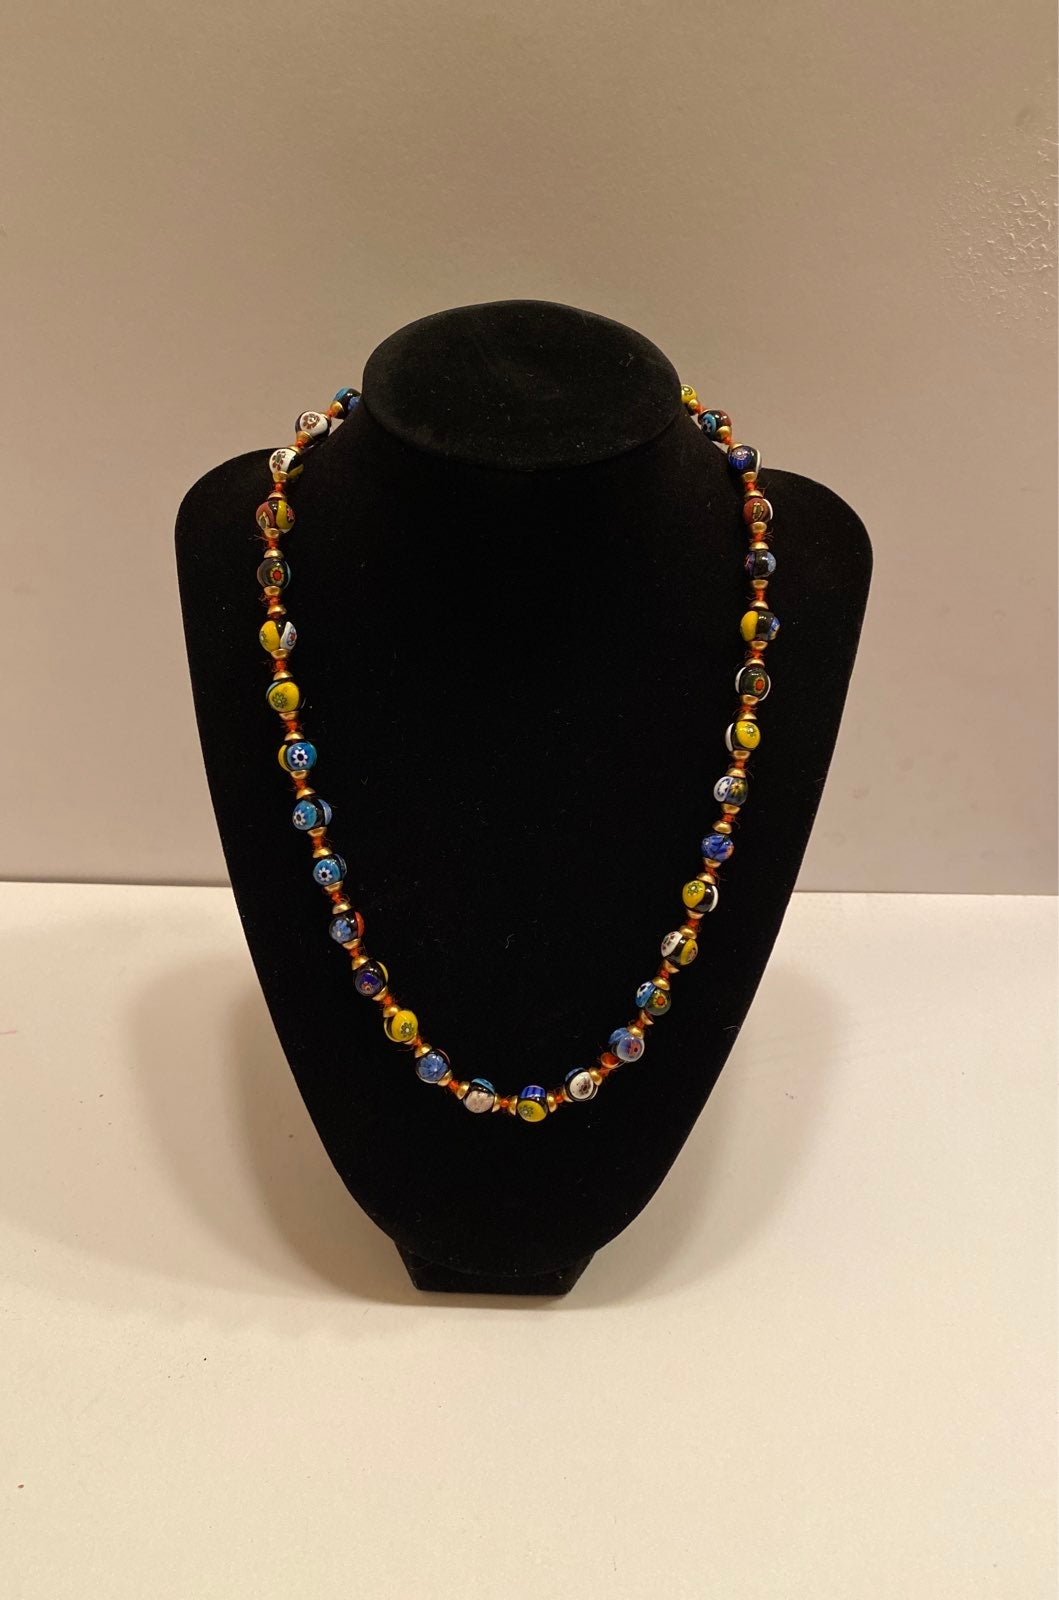 14k P Chinese Necklace